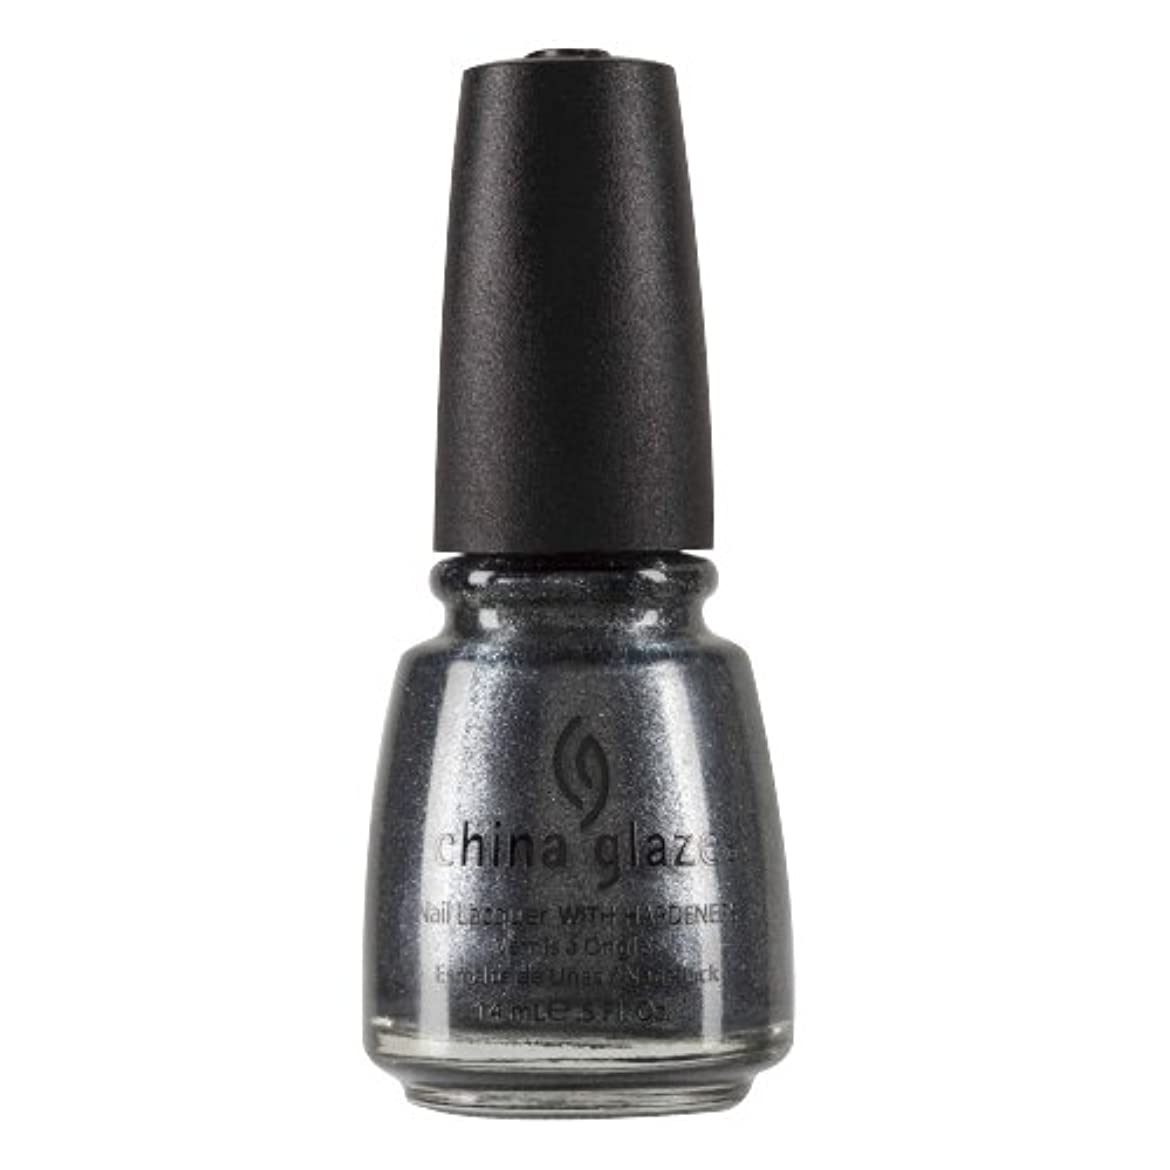 描く曇ったシールドCHINA GLAZE Nail Lacquer with Nail Hardner 2 - Jitterbug (並行輸入品)